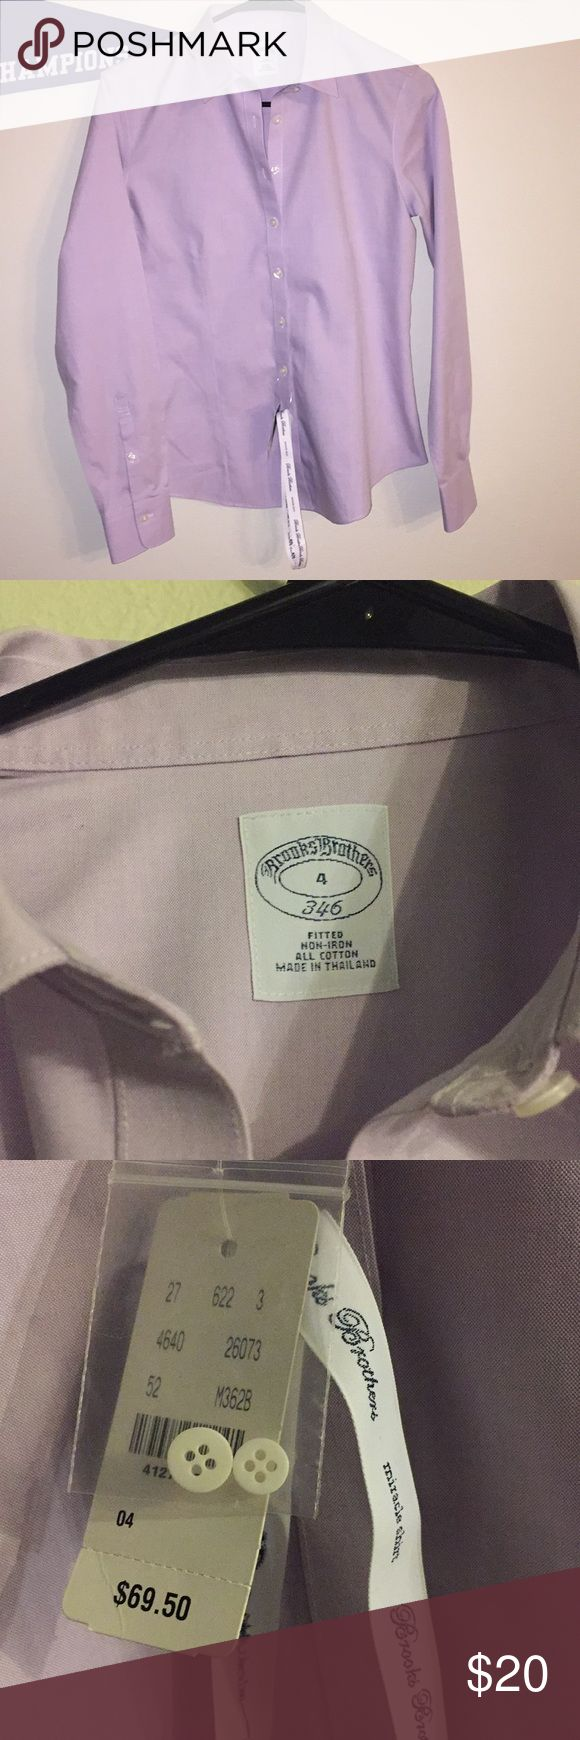 NWT Brooks Brothers Miracle Shirt in Lavender This is a never worn, NWT Brooks Brothers button-down shirt in lavender.   Darting below bust creates a fitted look. Sleeves feature two-button closure and pleats (pictured).   Very small discoloration on left side of shirt (pictured). Would probably come out with washing, but has not been attempted in order to preserve the tags.  Price firm!  Also pictured: chart for this specific Brooks Brothers fit.  Measurements are listed in this order: Size…